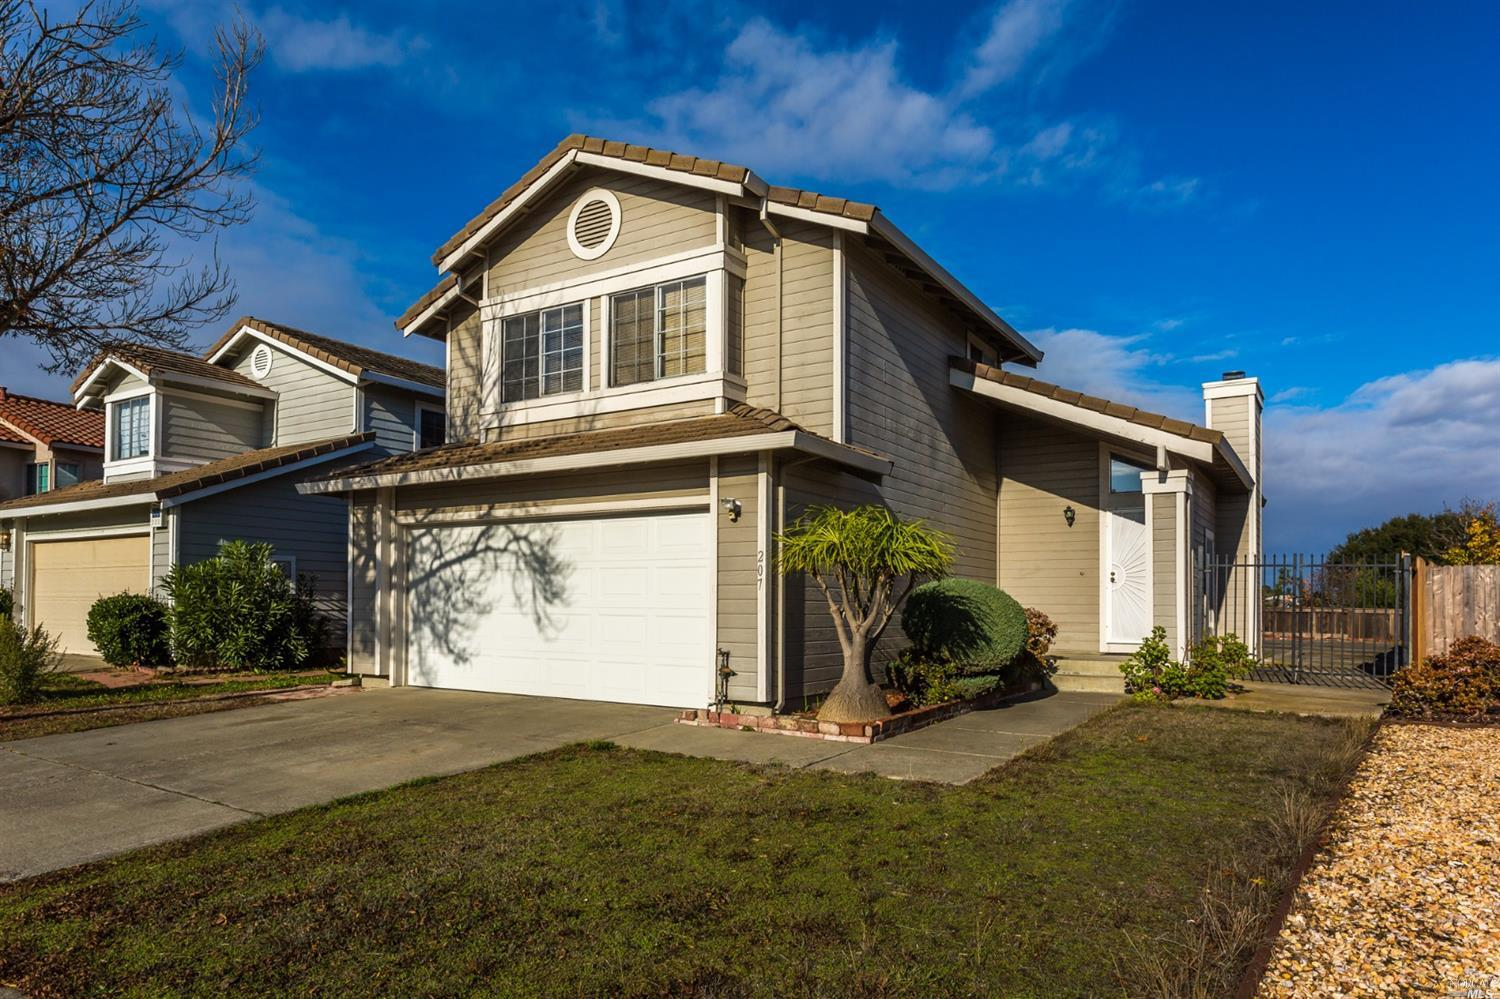 This is an excellent opportunity to own a Coventry Hills home in East Vallejo.  With 3 beds and 2 1/